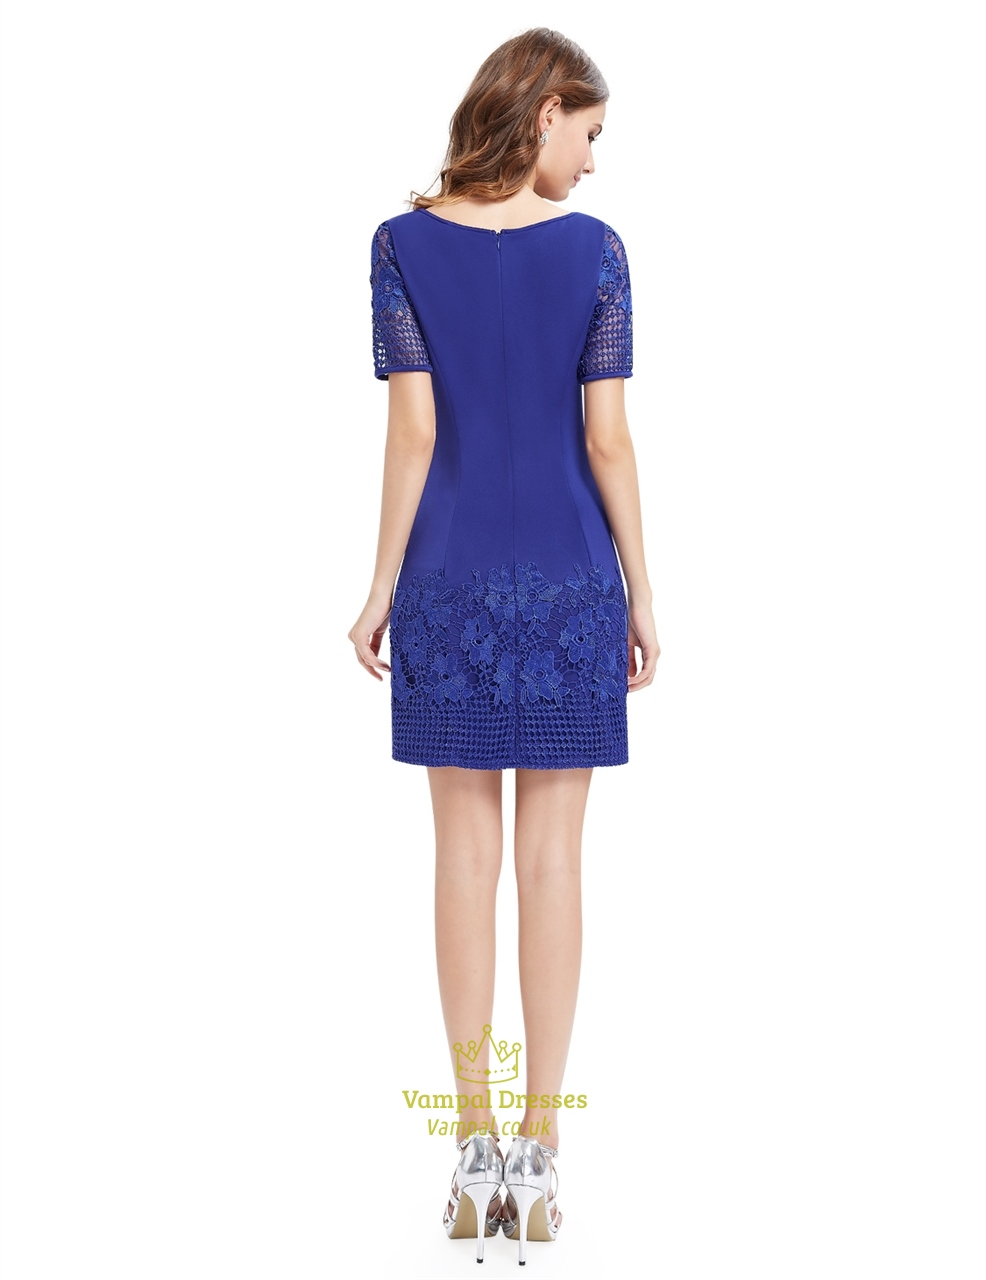 casual summer royal blue sheath dress with short sleeves